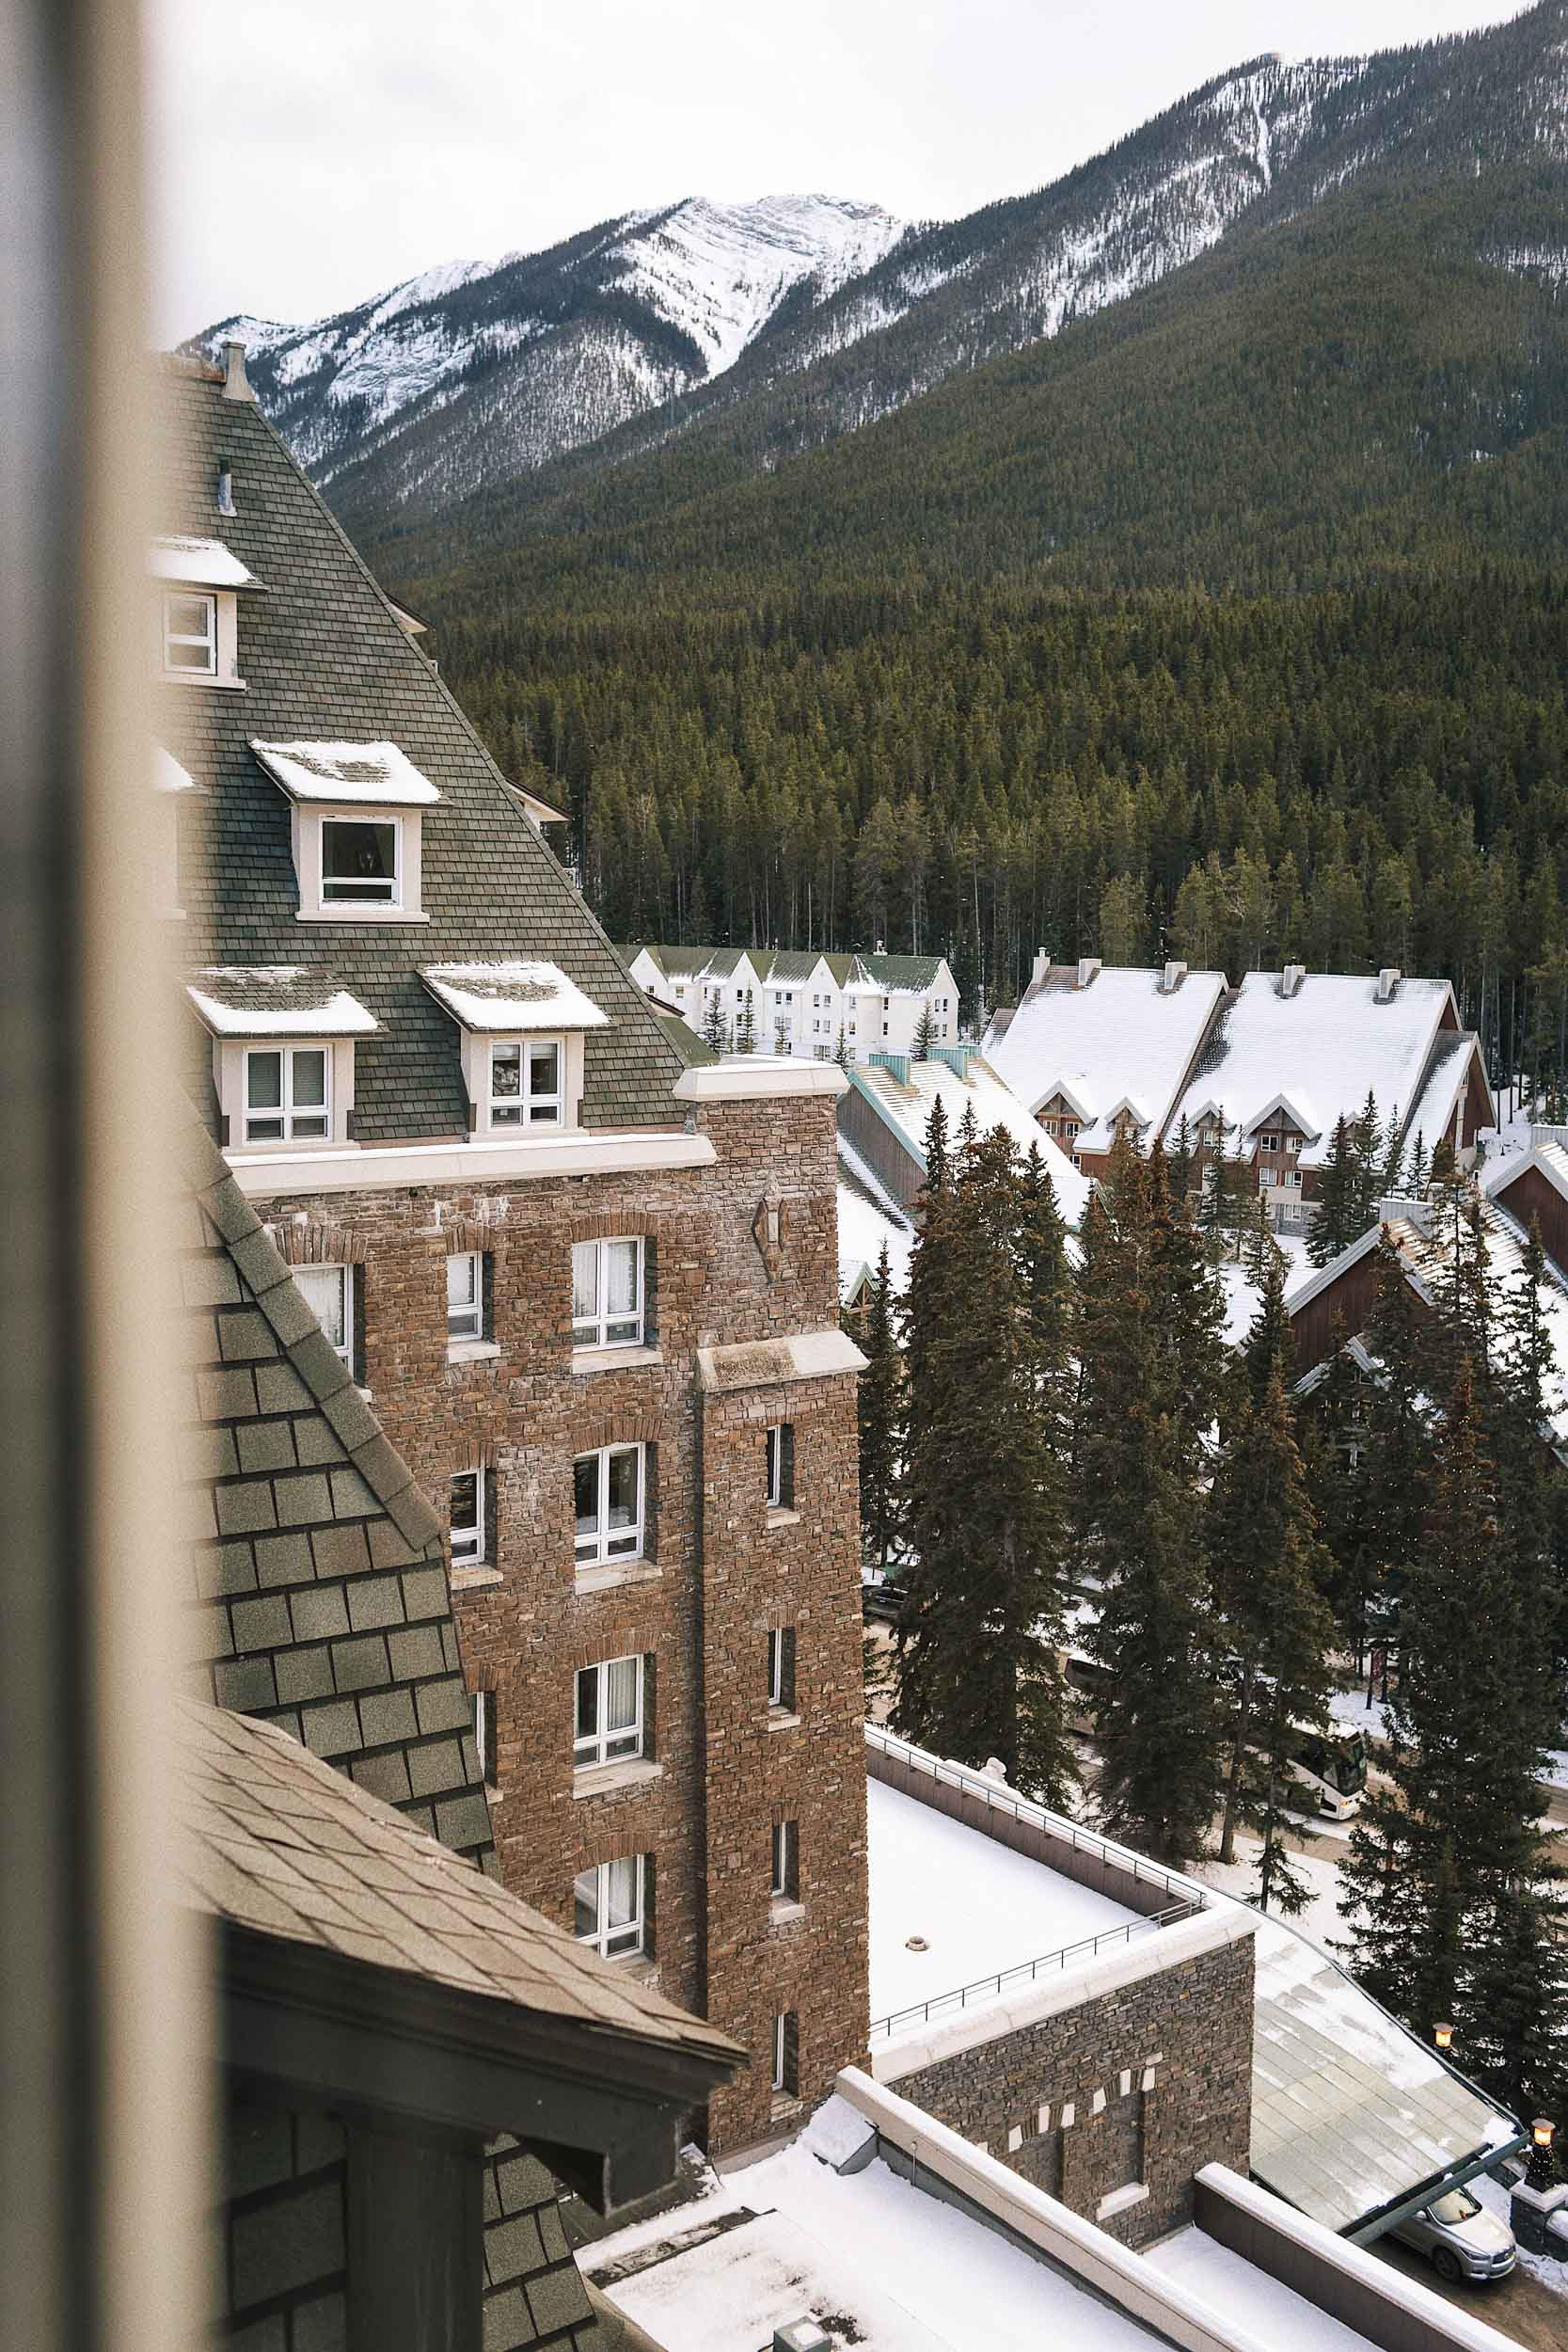 ckanani-banff-winter-a-guide-to-visiting-105.jpg